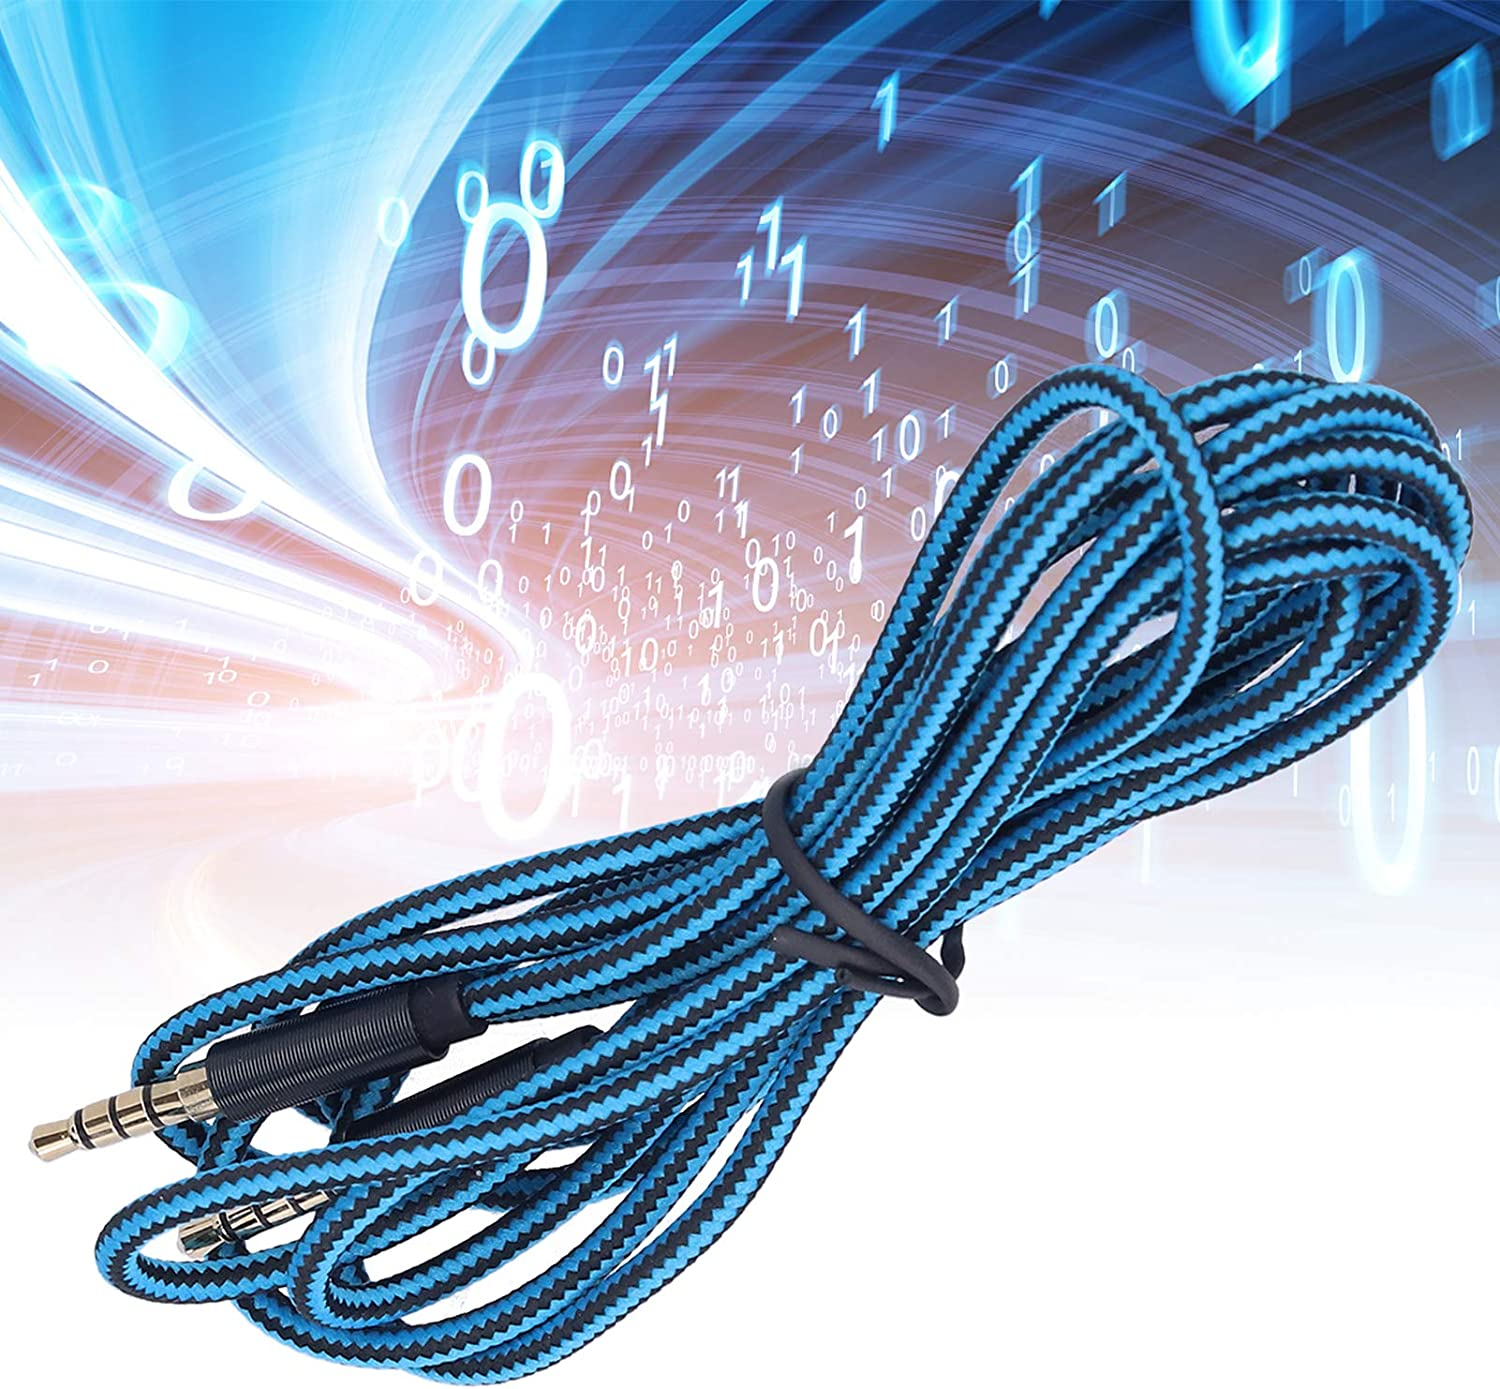 FastUU Headset Extension Cord overseas Lightweight for 2M Clearance SALE! Limited time! Audio A3 Cable